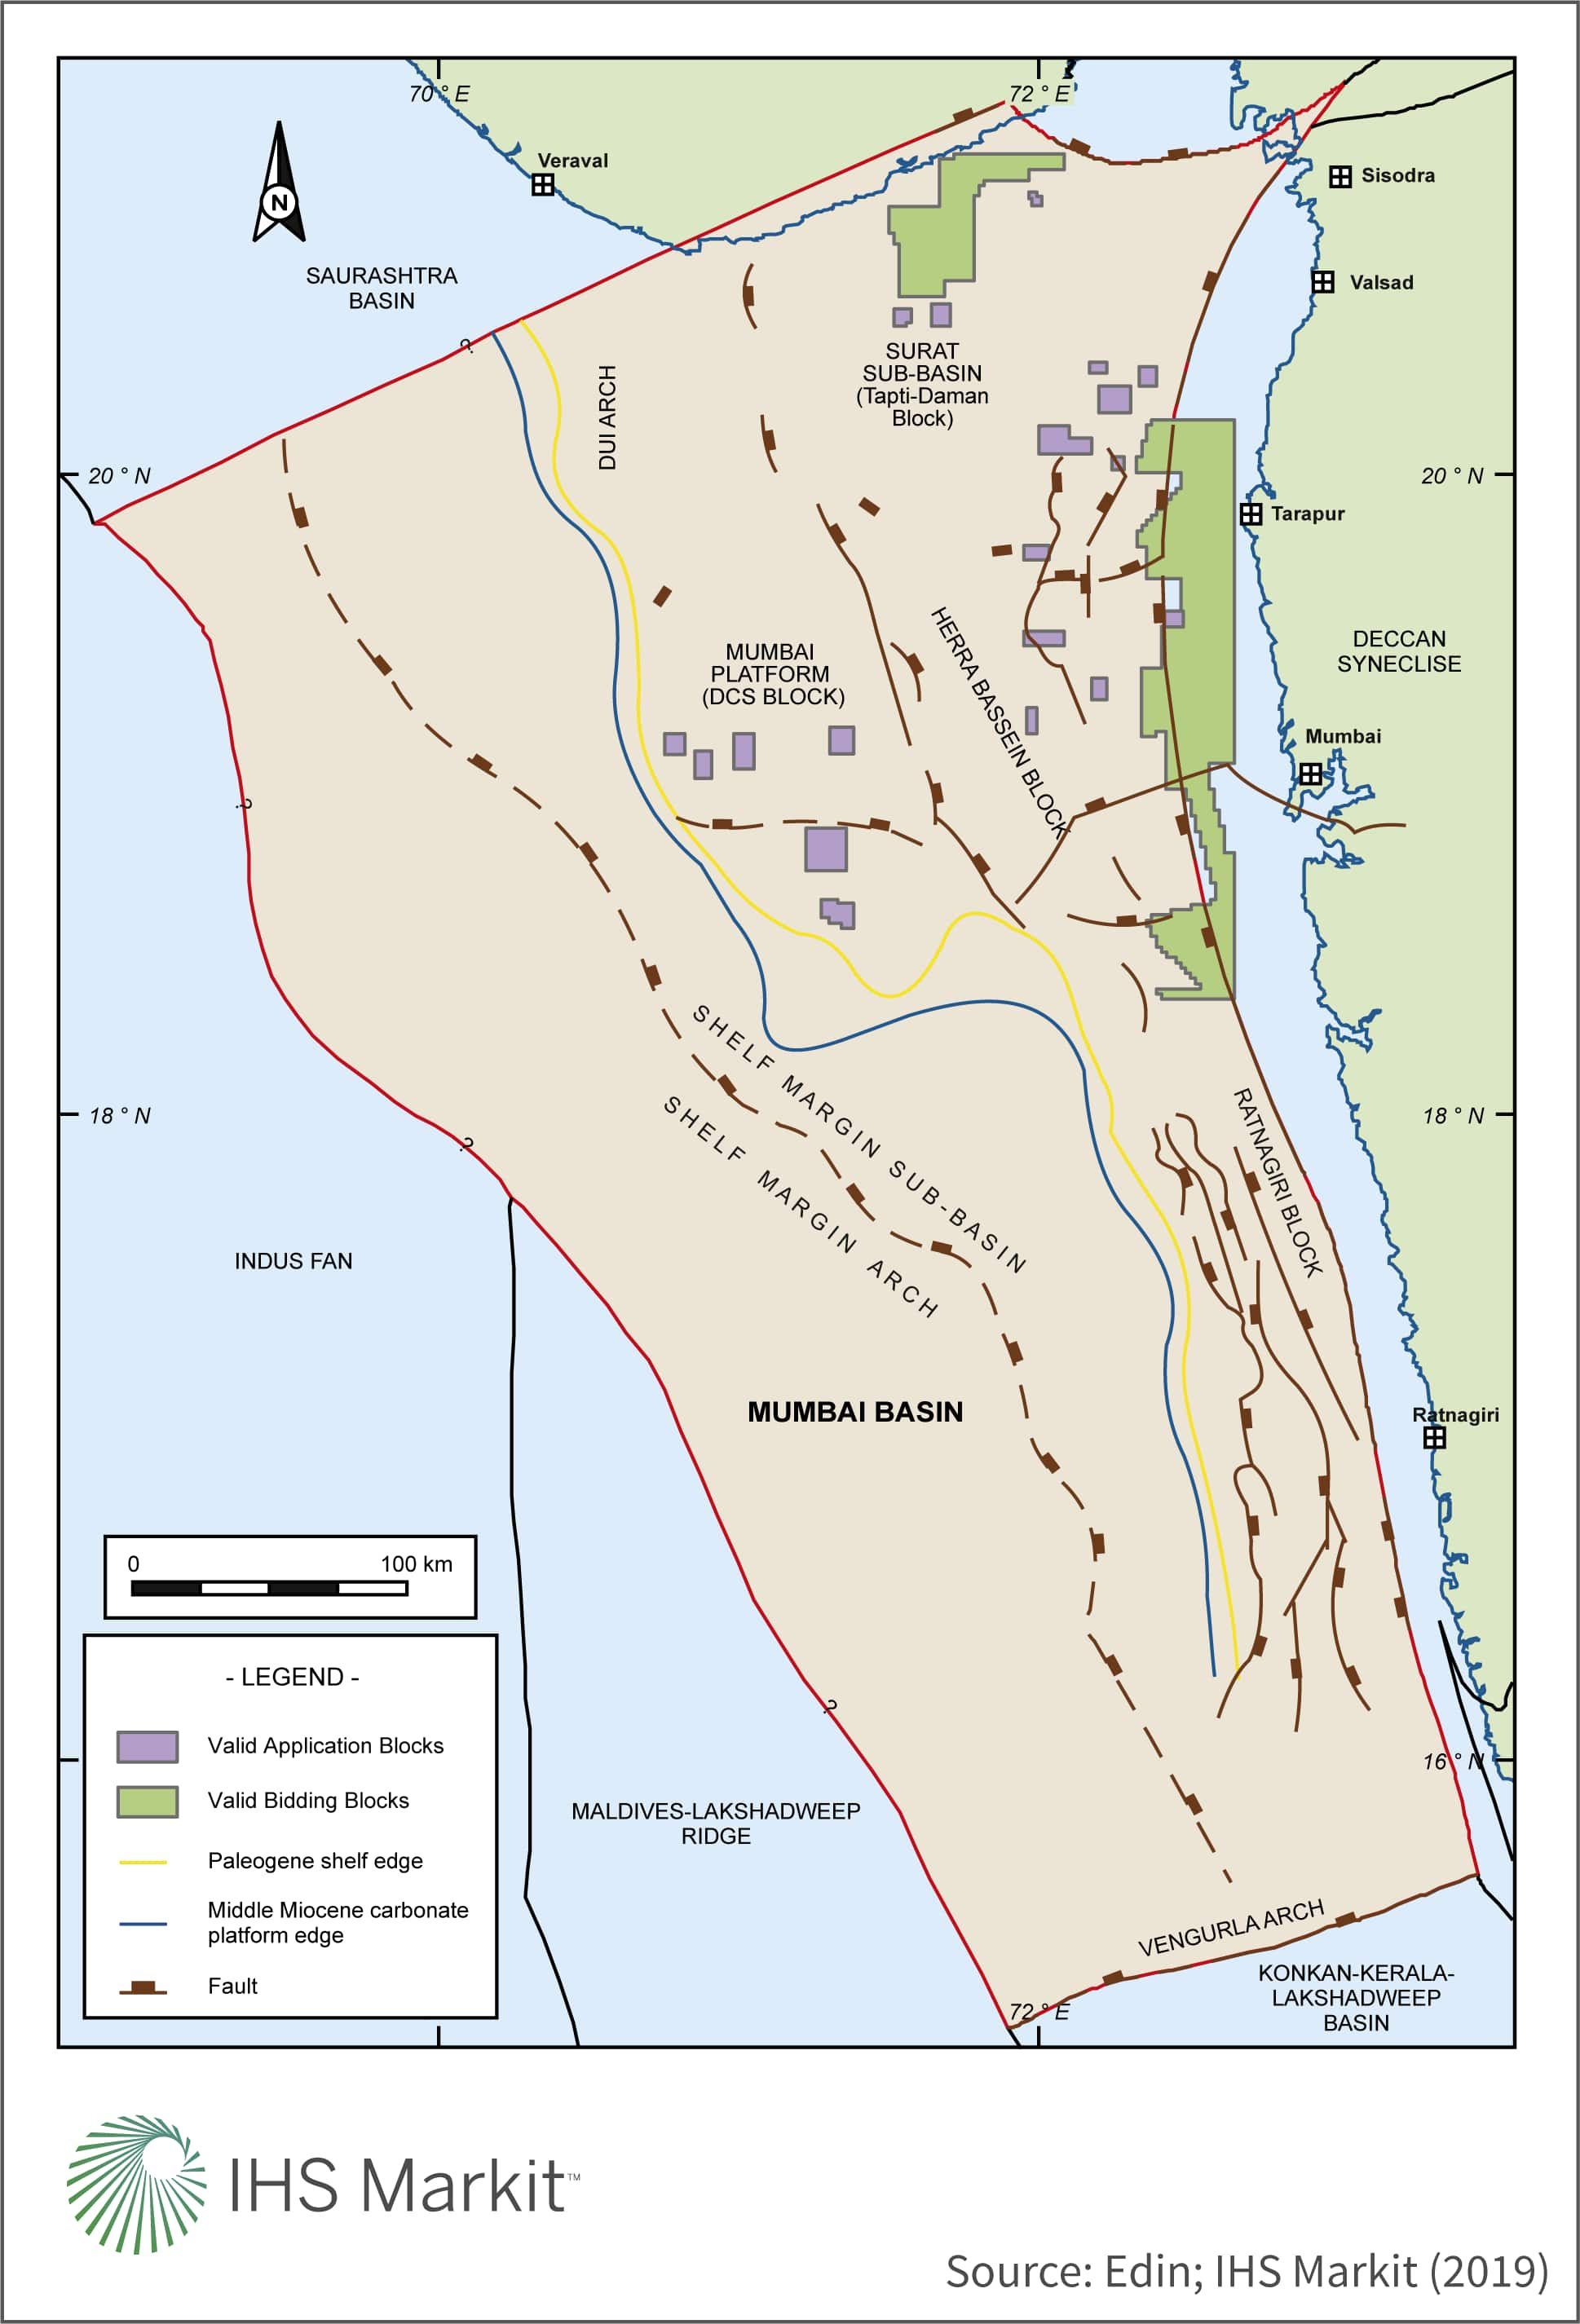 The Mumbai Basin's geological history, future potential and